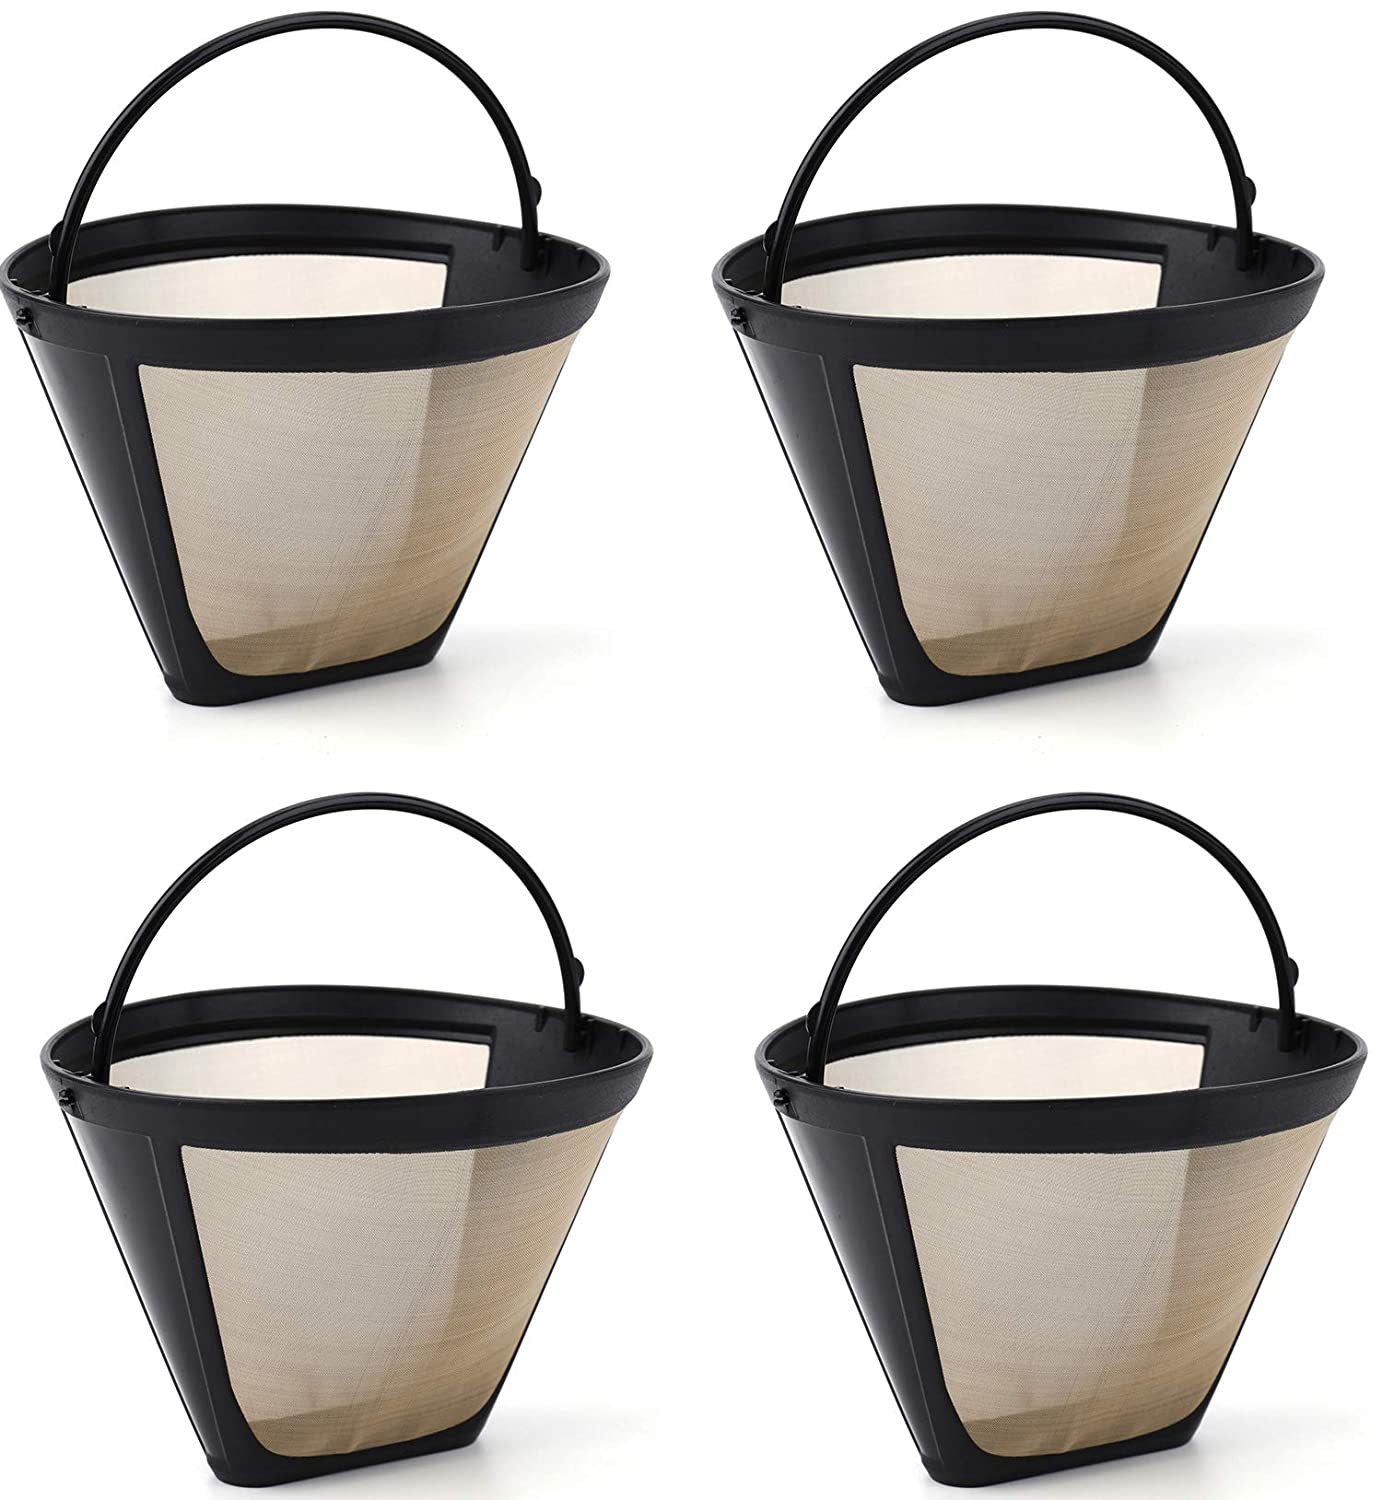 Lawei 4 pack Reusable Coffee Filter - #4 Cone Style Permanent Coffee Filter fits Most Cuisinart, Krups and other